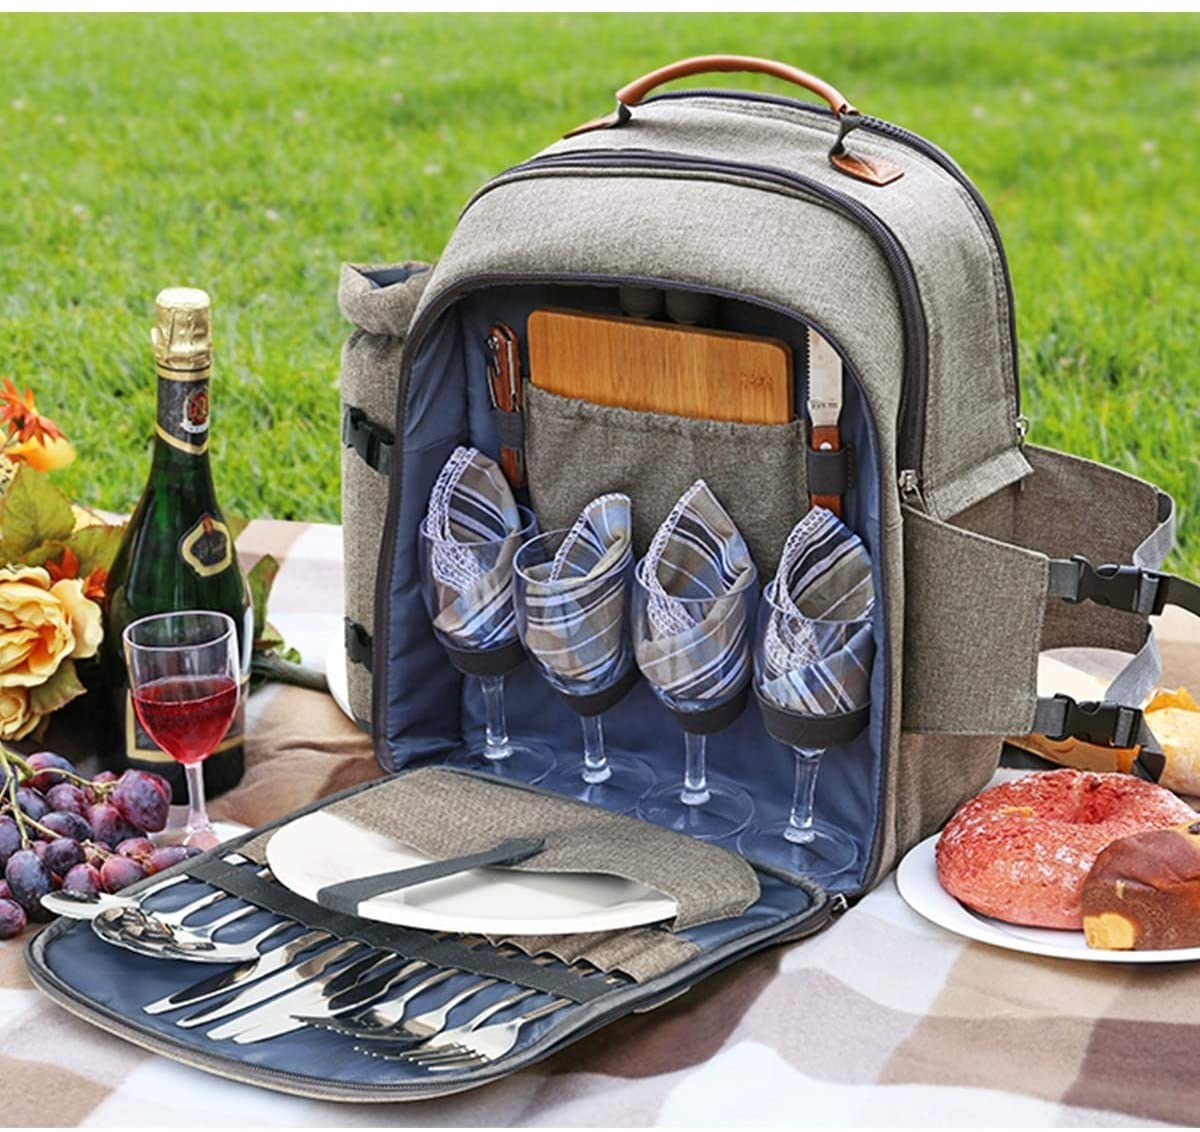 the gray and blue picnic backpack on a checked blanket in a grassy area